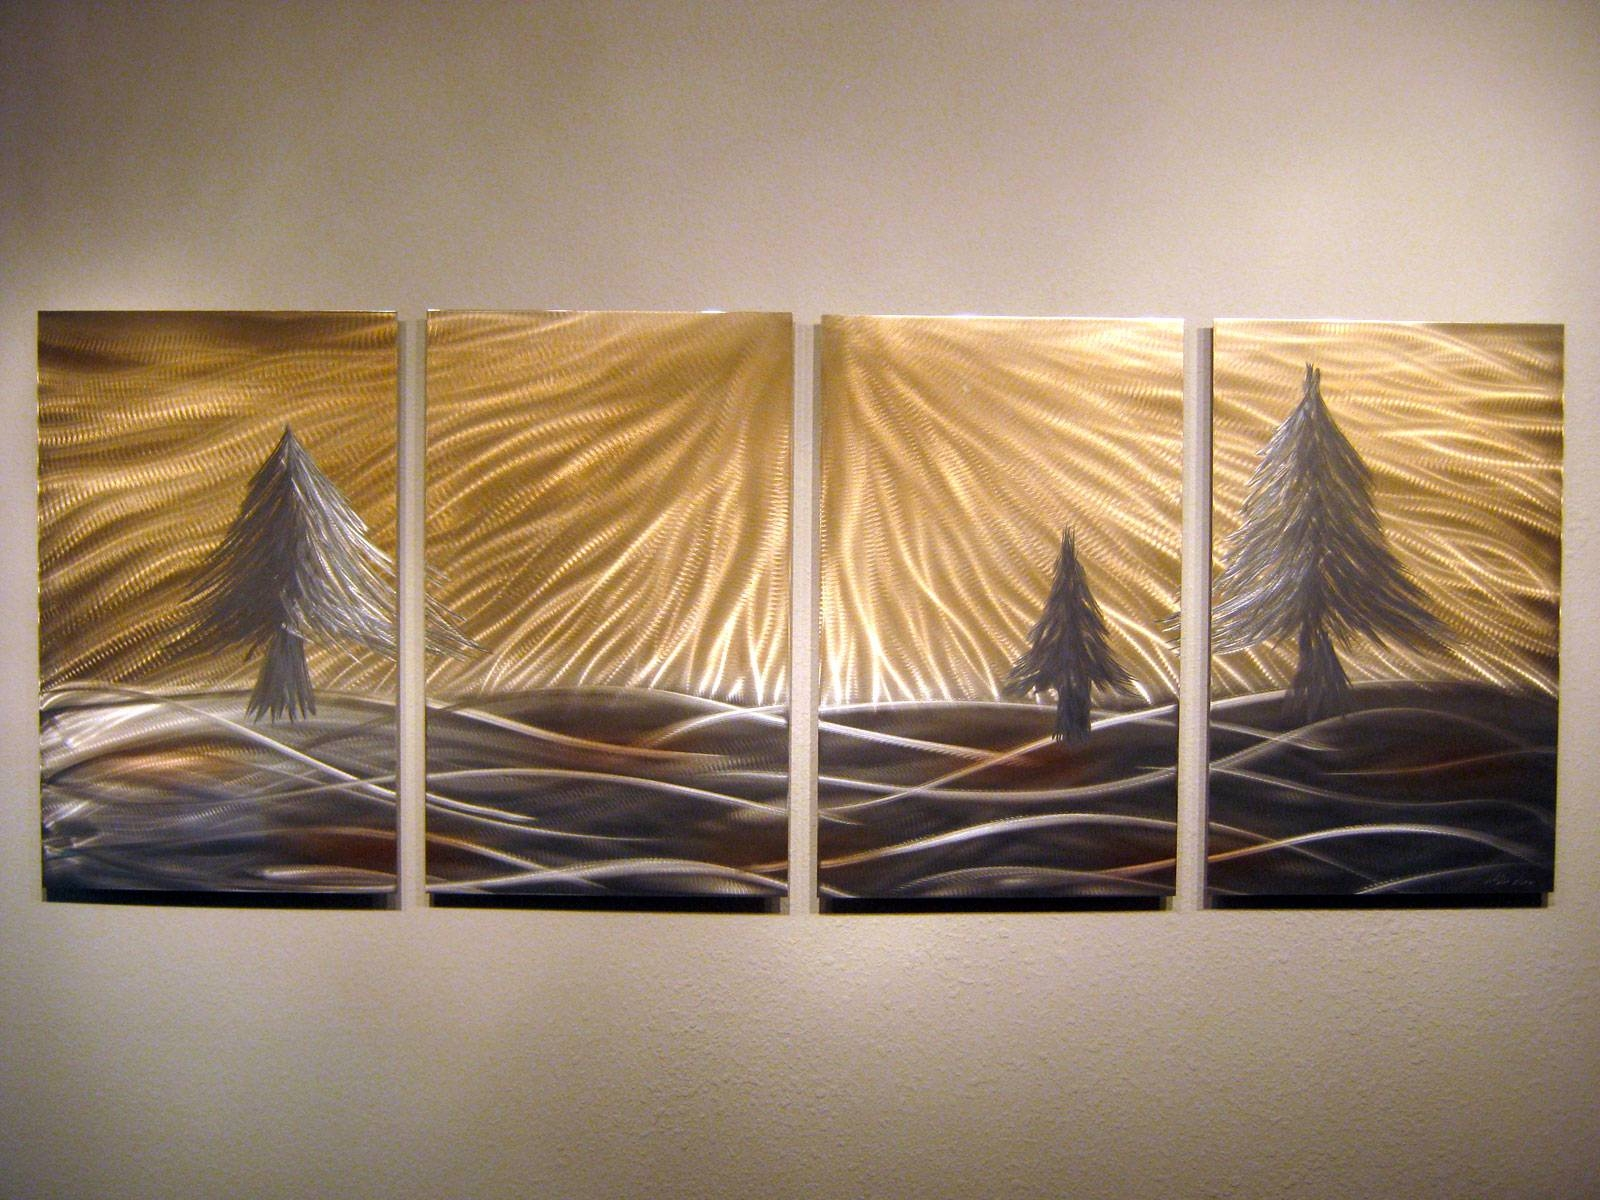 3 Pine Trees – Abstract Metal Wall Art Contemporary Modern Decor In Newest Pine Tree Wall Art (View 20 of 30)